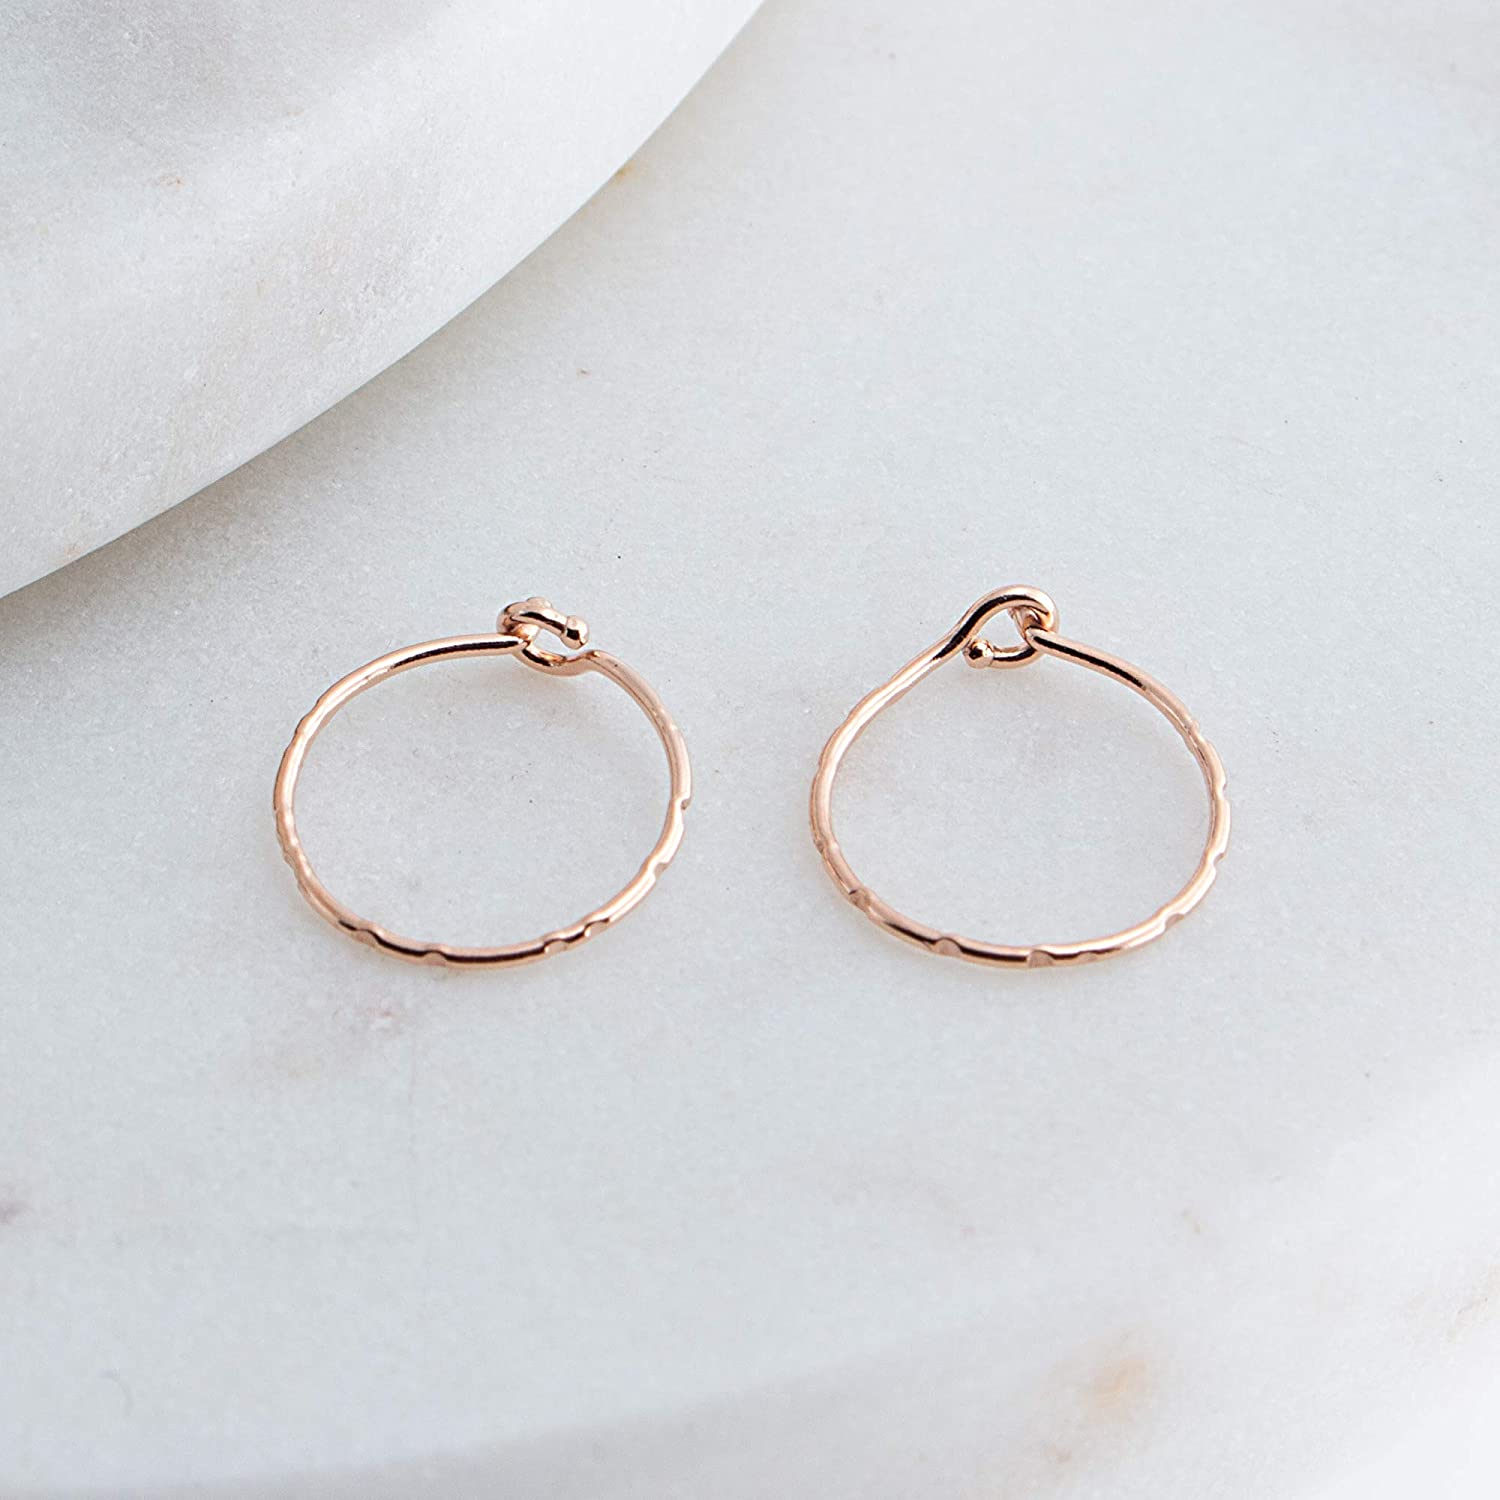 Grooved Extra Thin Rose Gold Filled Hoop Earrings Handmade for Small and thin Earlobes Gift for Her RGF-CL-R-HH-D8MM-24GA